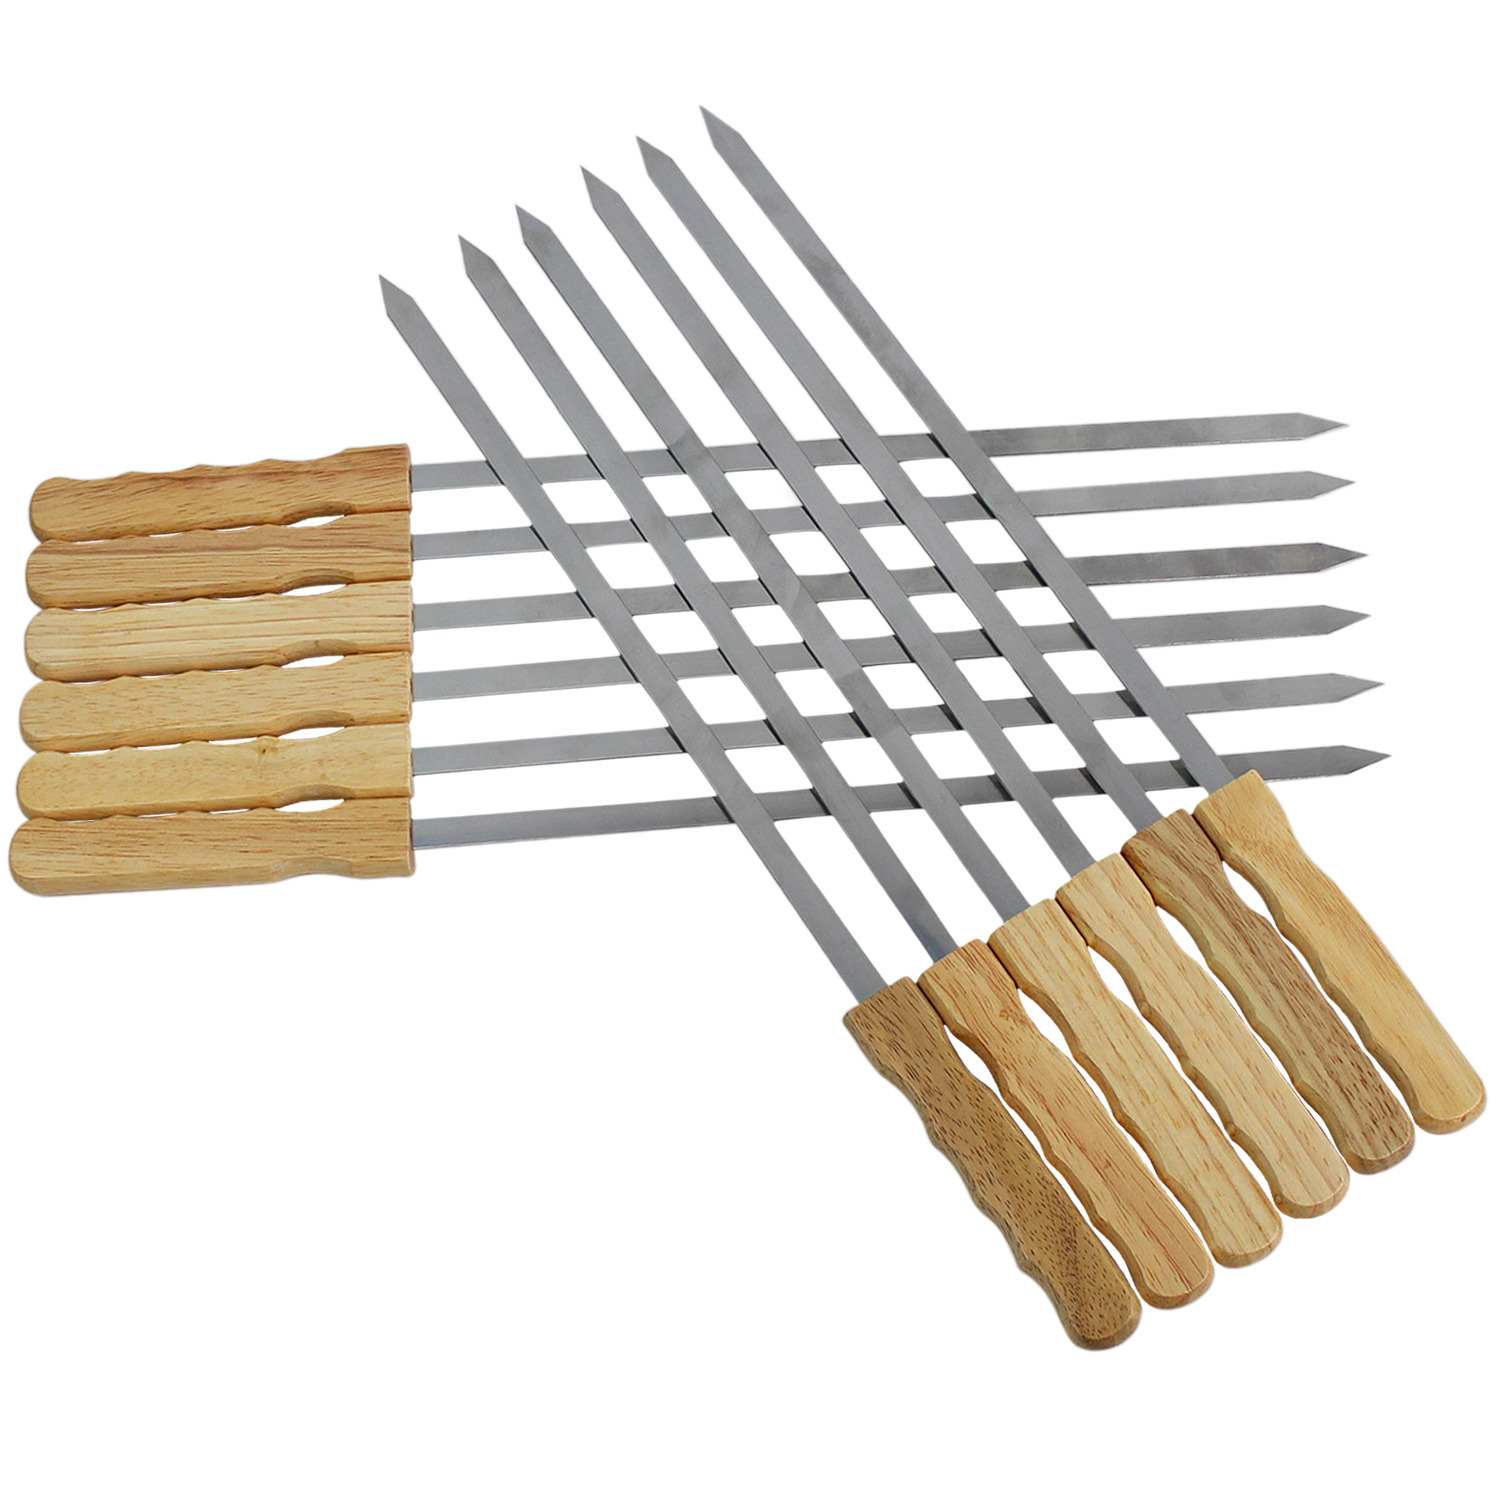 17 inch Brazilian BBQ Skewers Set of 12, Used for Barbecuing Meat, Poultry, Seafood, Vegetables, Cheese, Fruit, Stainless Steel, Barbeque Accessories